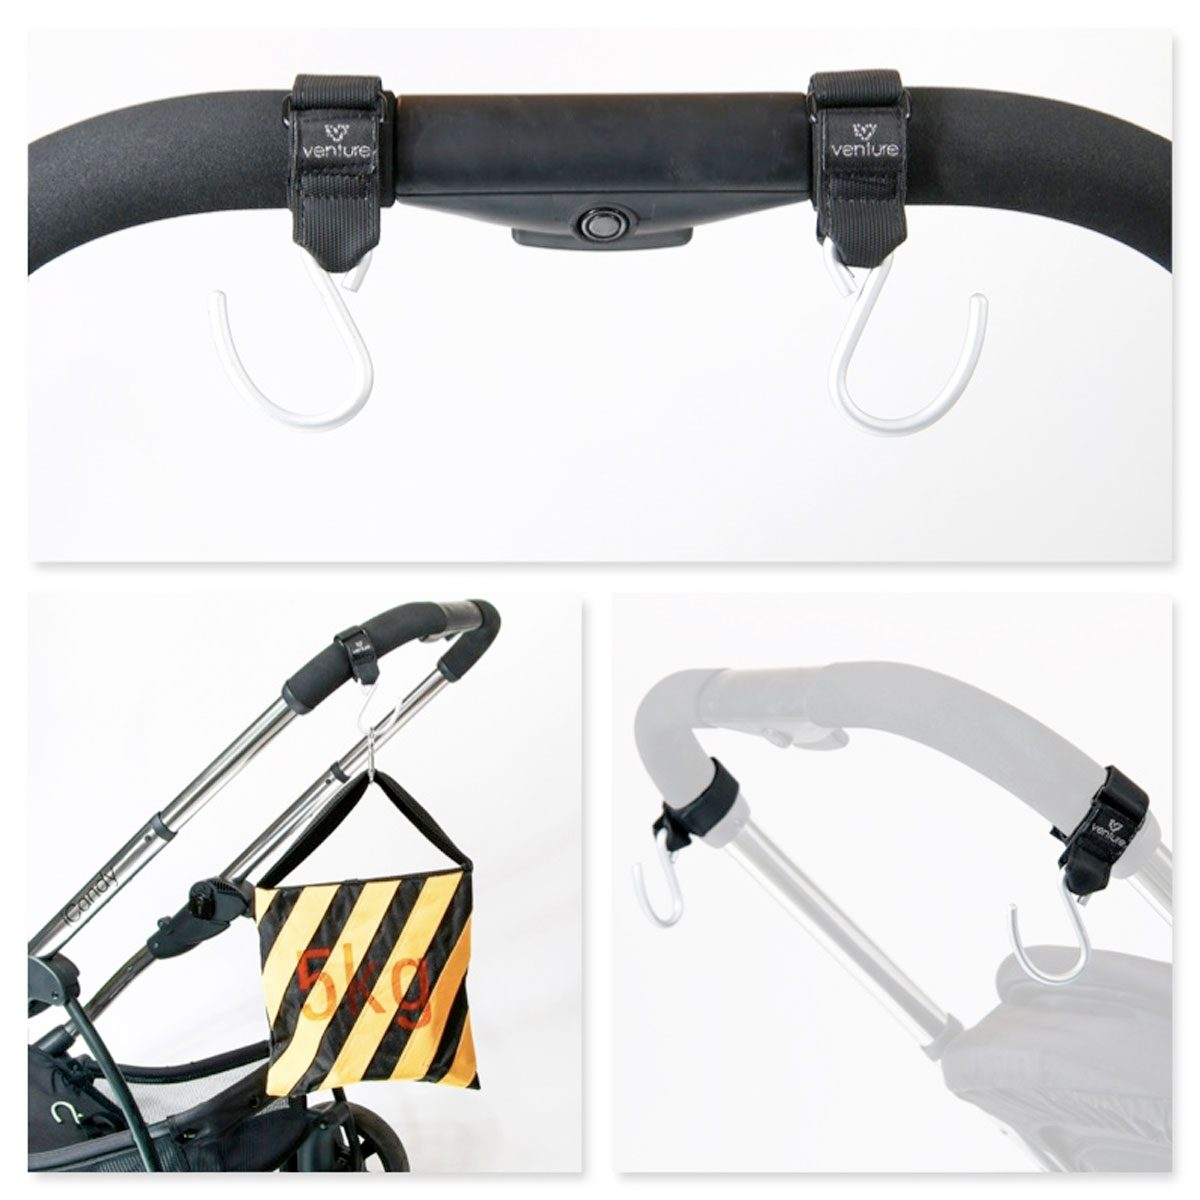 Venture buggy hooks provide extra security to your stroller bag